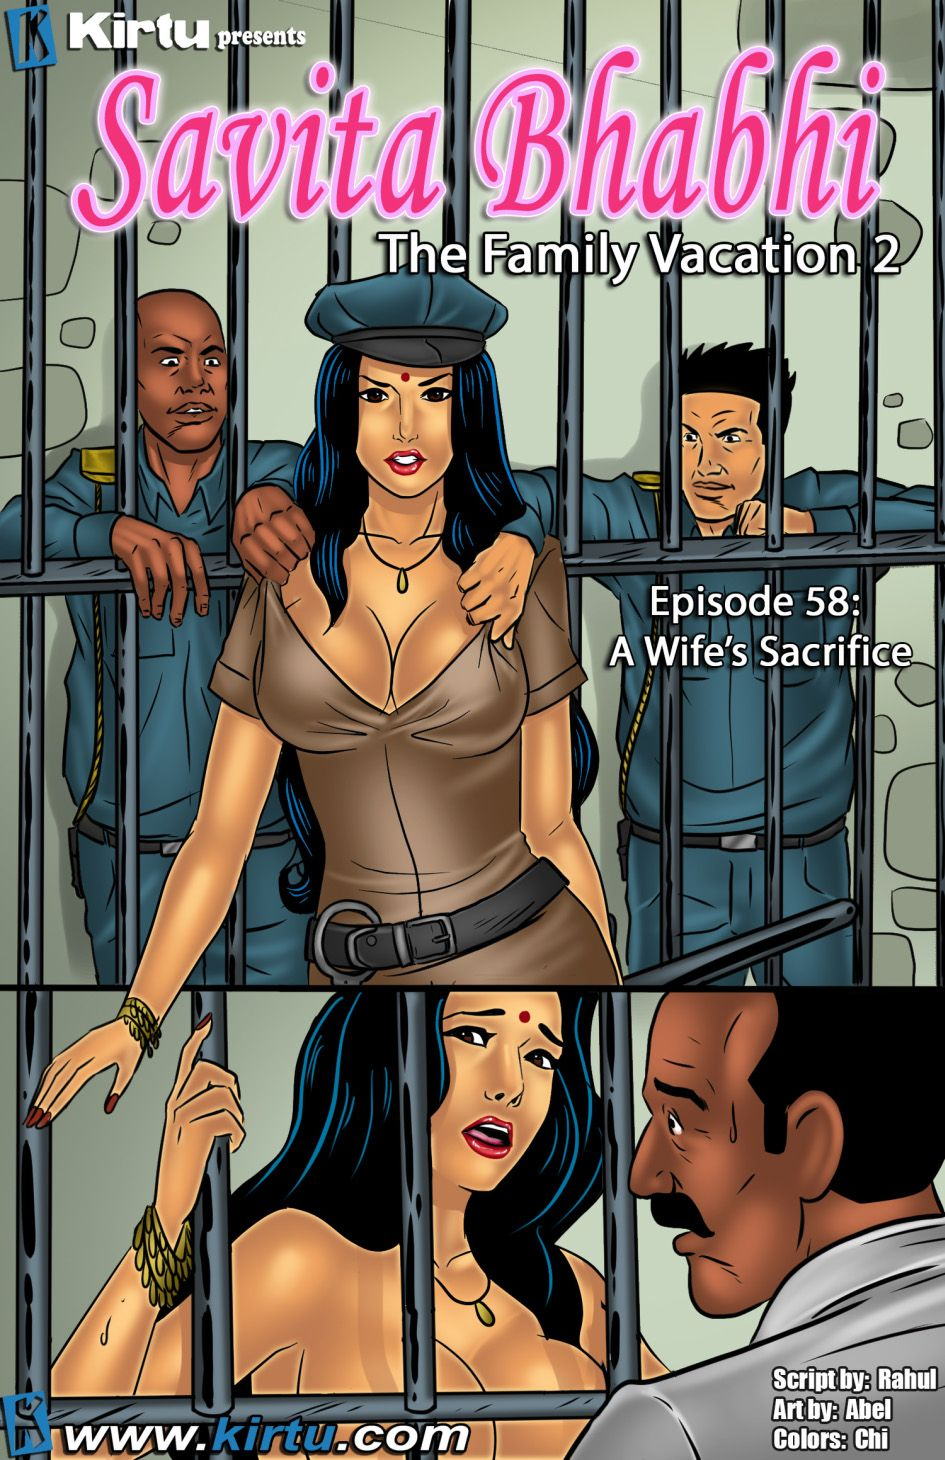 Savita Bhabhi Episode 58 A Wifes Sacrifice Out Drinking While On Holiday In Barcelona Ashok Gets Hammered And Wanders Off Ultimately Getting Arrested